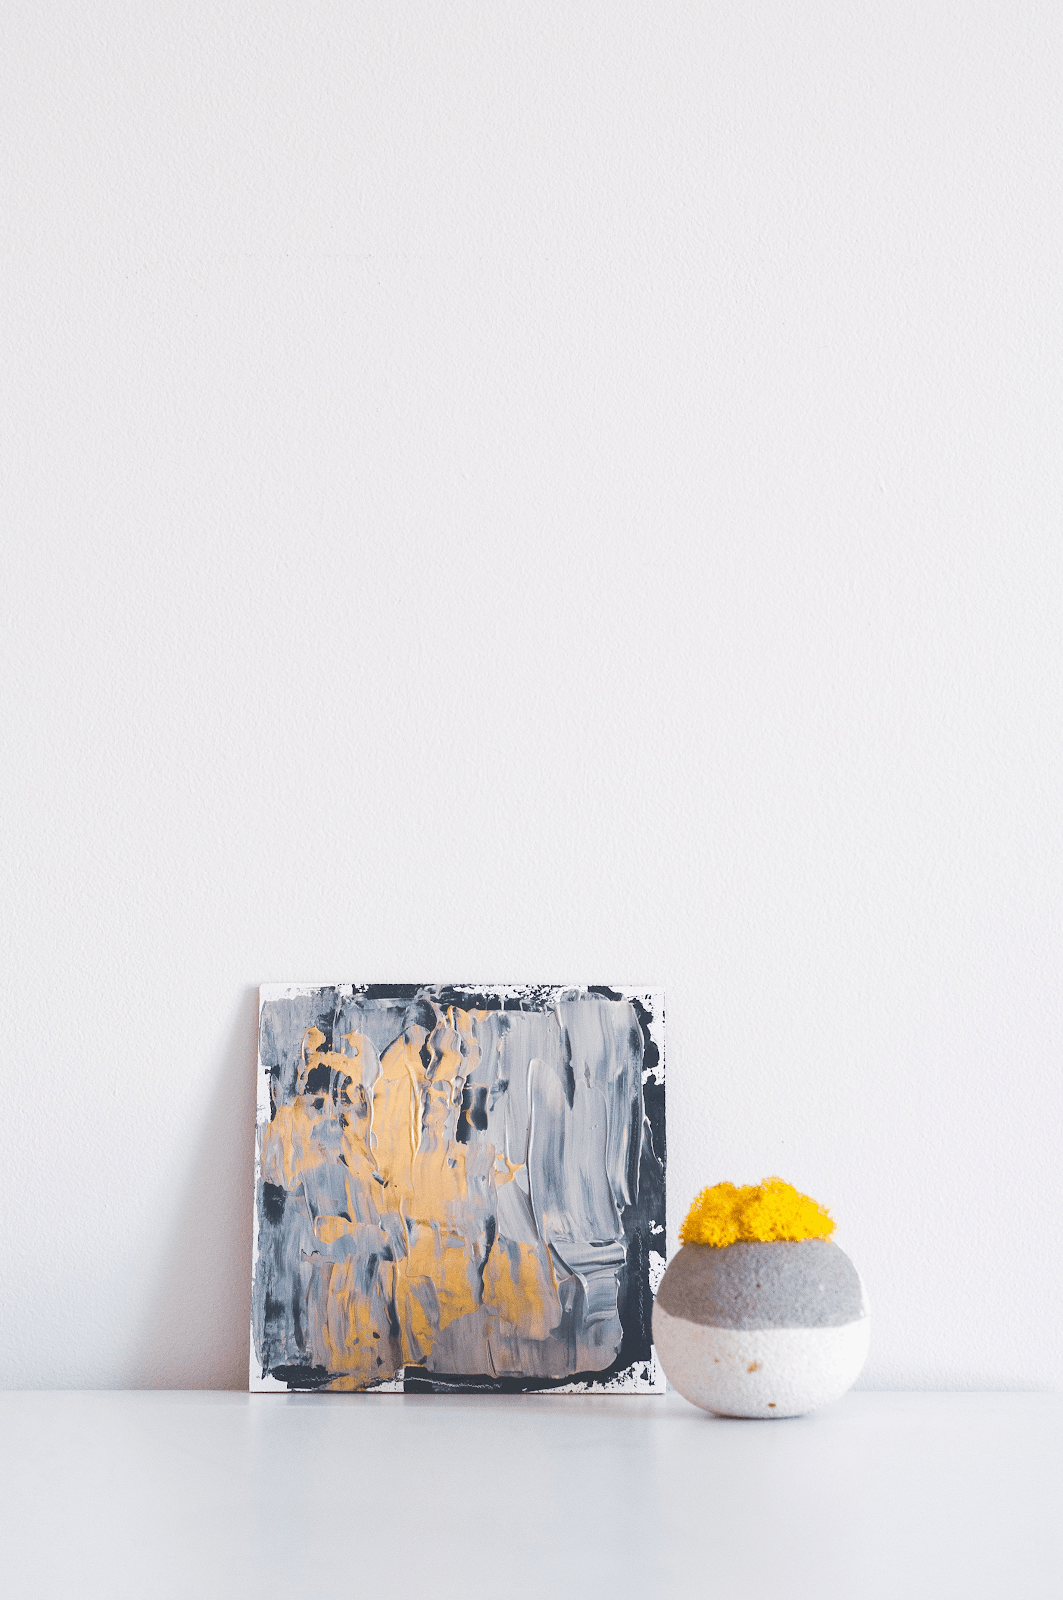 white wall with a painting on the floor